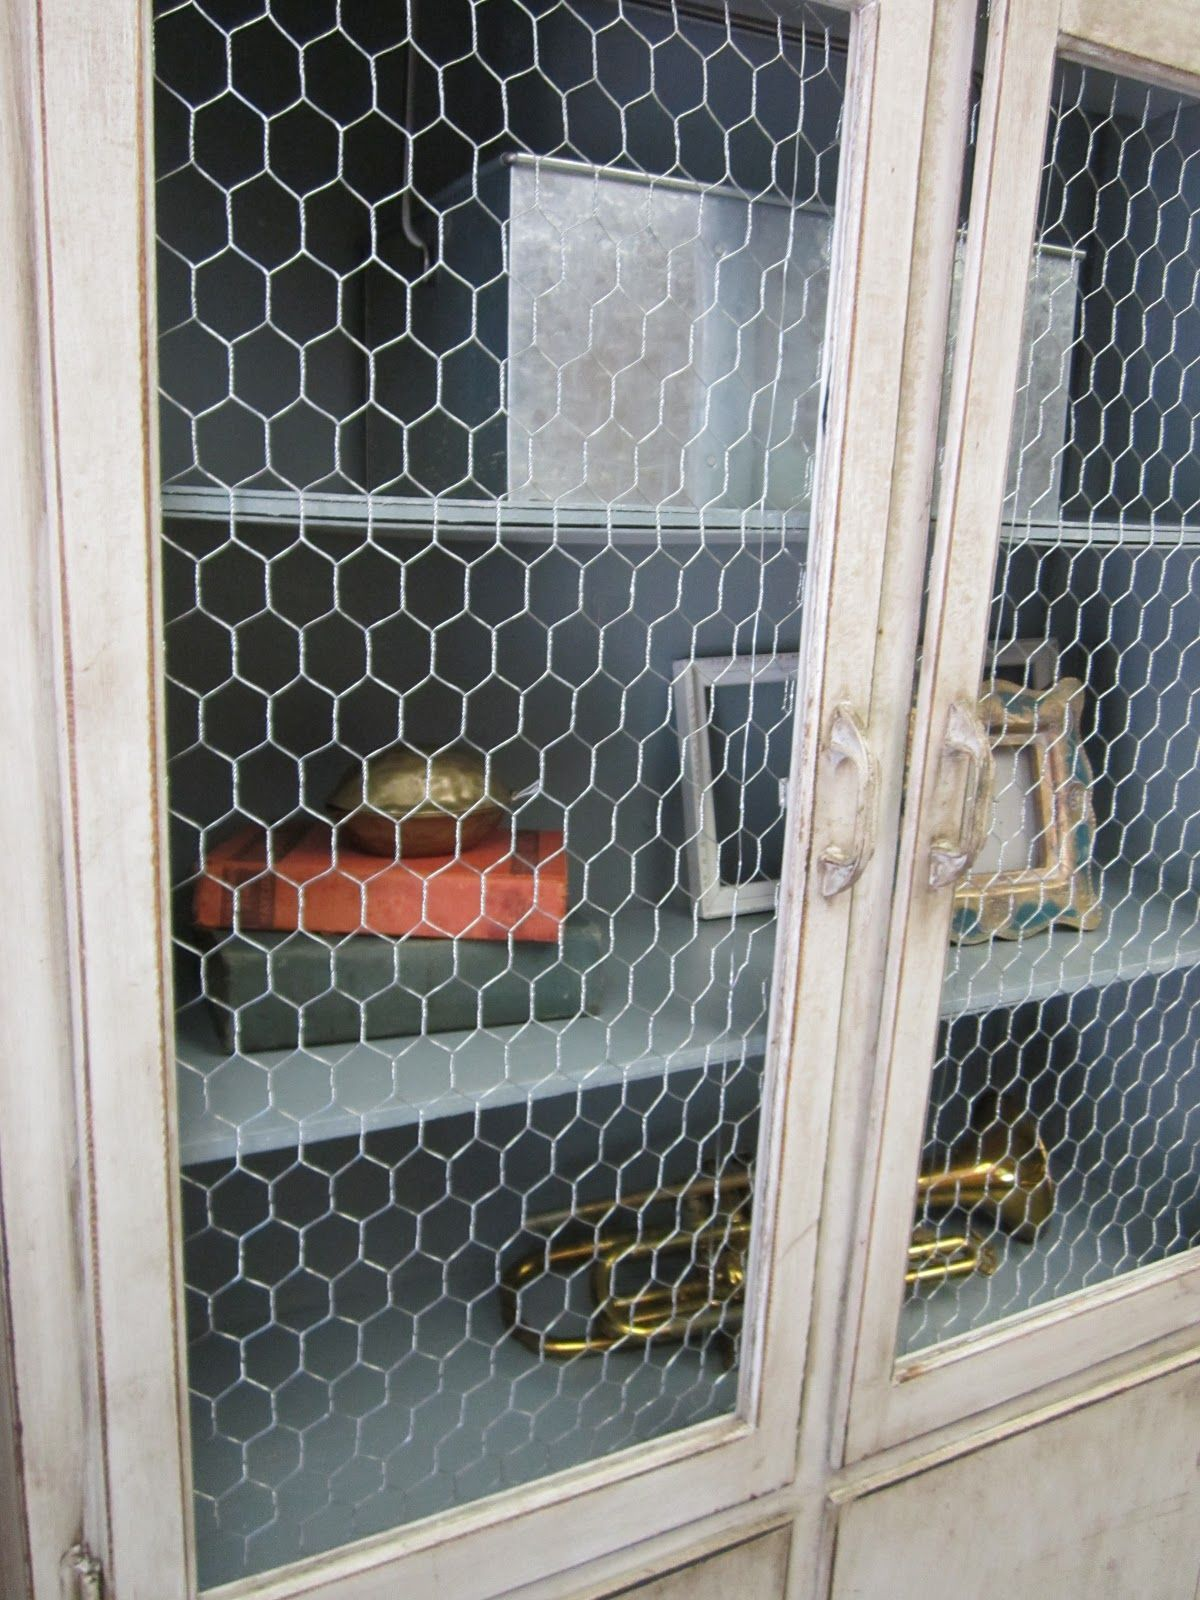 cupboard doors option with chicken wire | Cindy living room ...